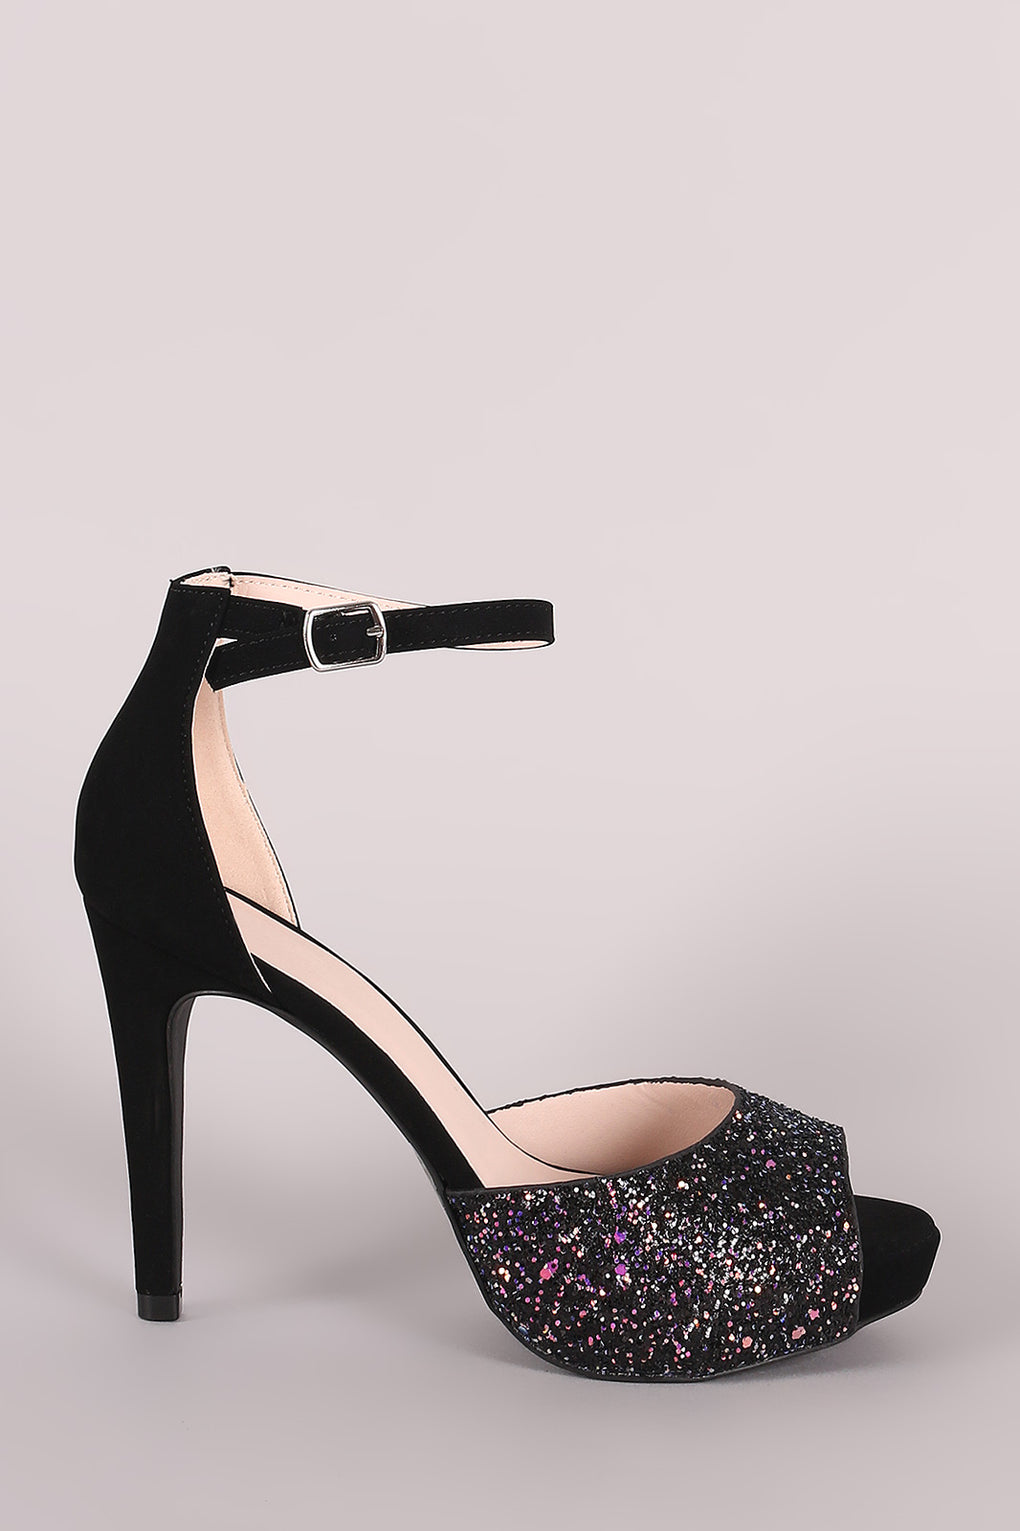 Qupid Iridescent Glitter Accent Ankle Strap Stiletto Platform Heel - Danish Fashion & Living Online Store SALE